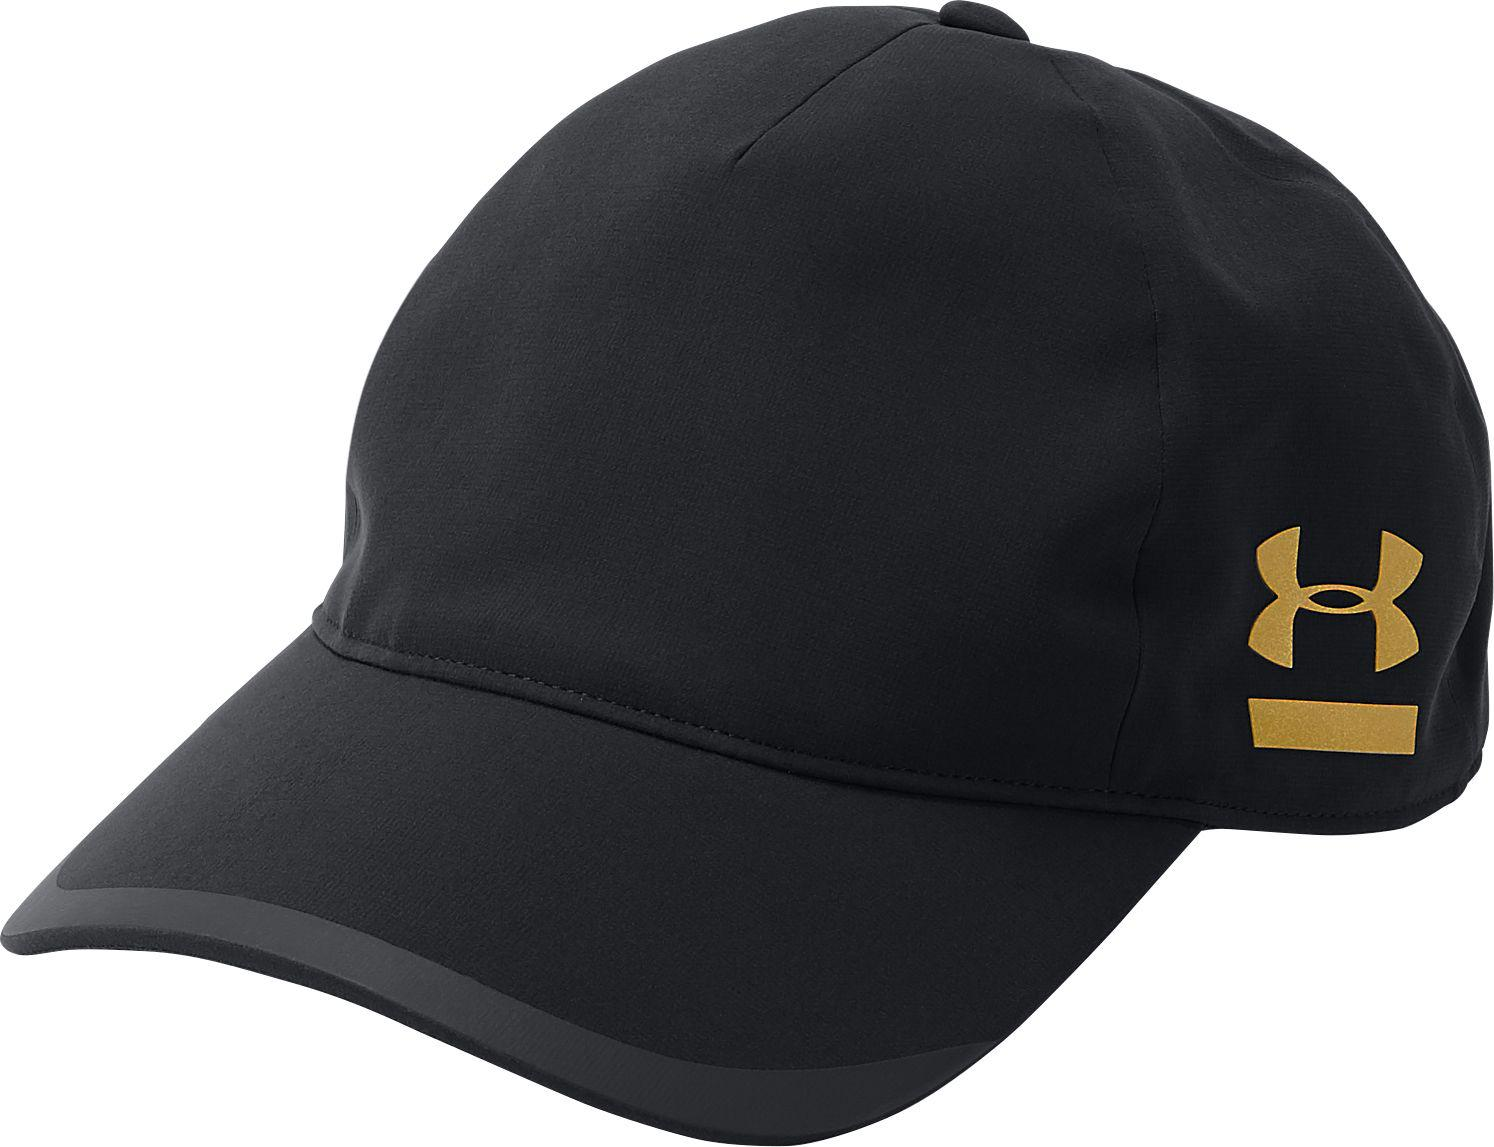 Lyst - Under Armour Perpetual Free Fit Hat in Black for Men e5e936143fc2